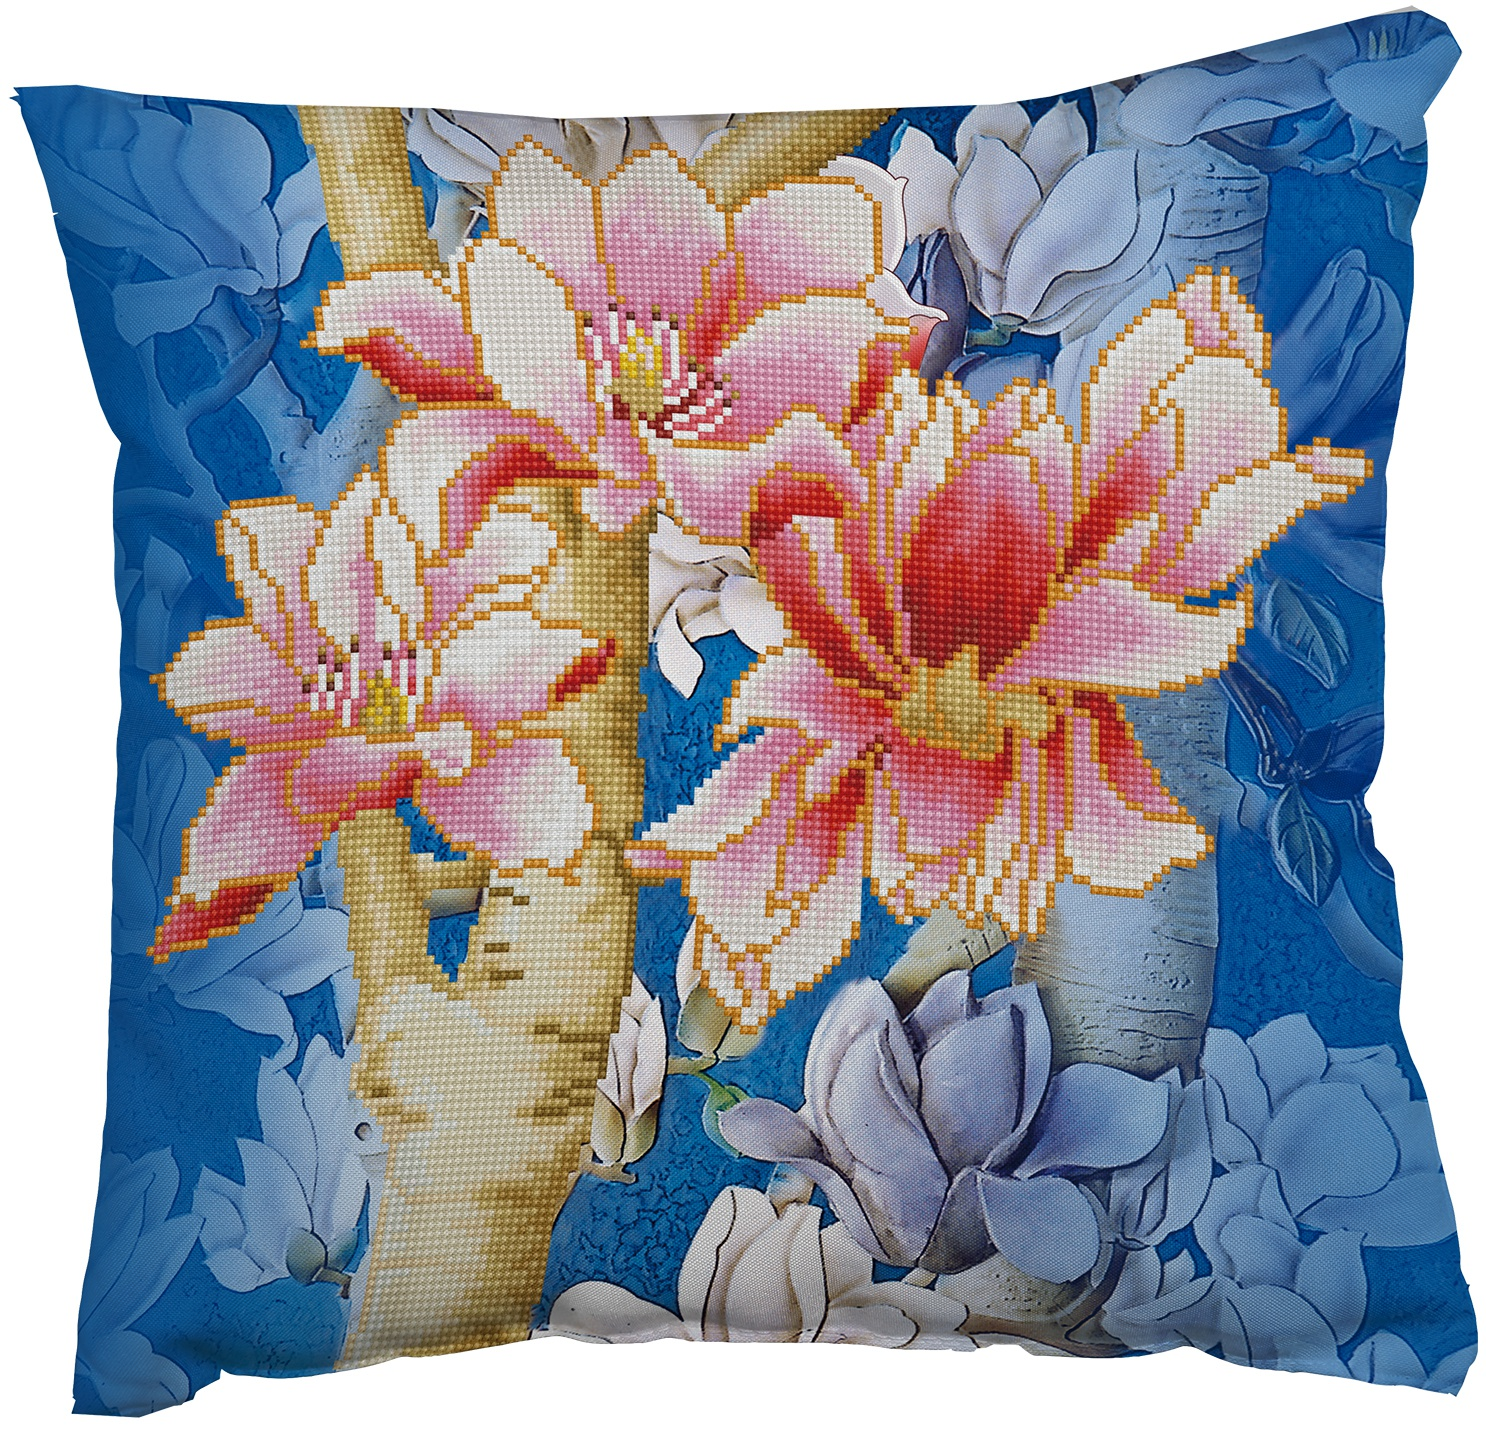 Diamond Dotz Diamond Embroidery Pillow Facet Art Kit-Magnolia On Blue 1 (17.5X17.5)